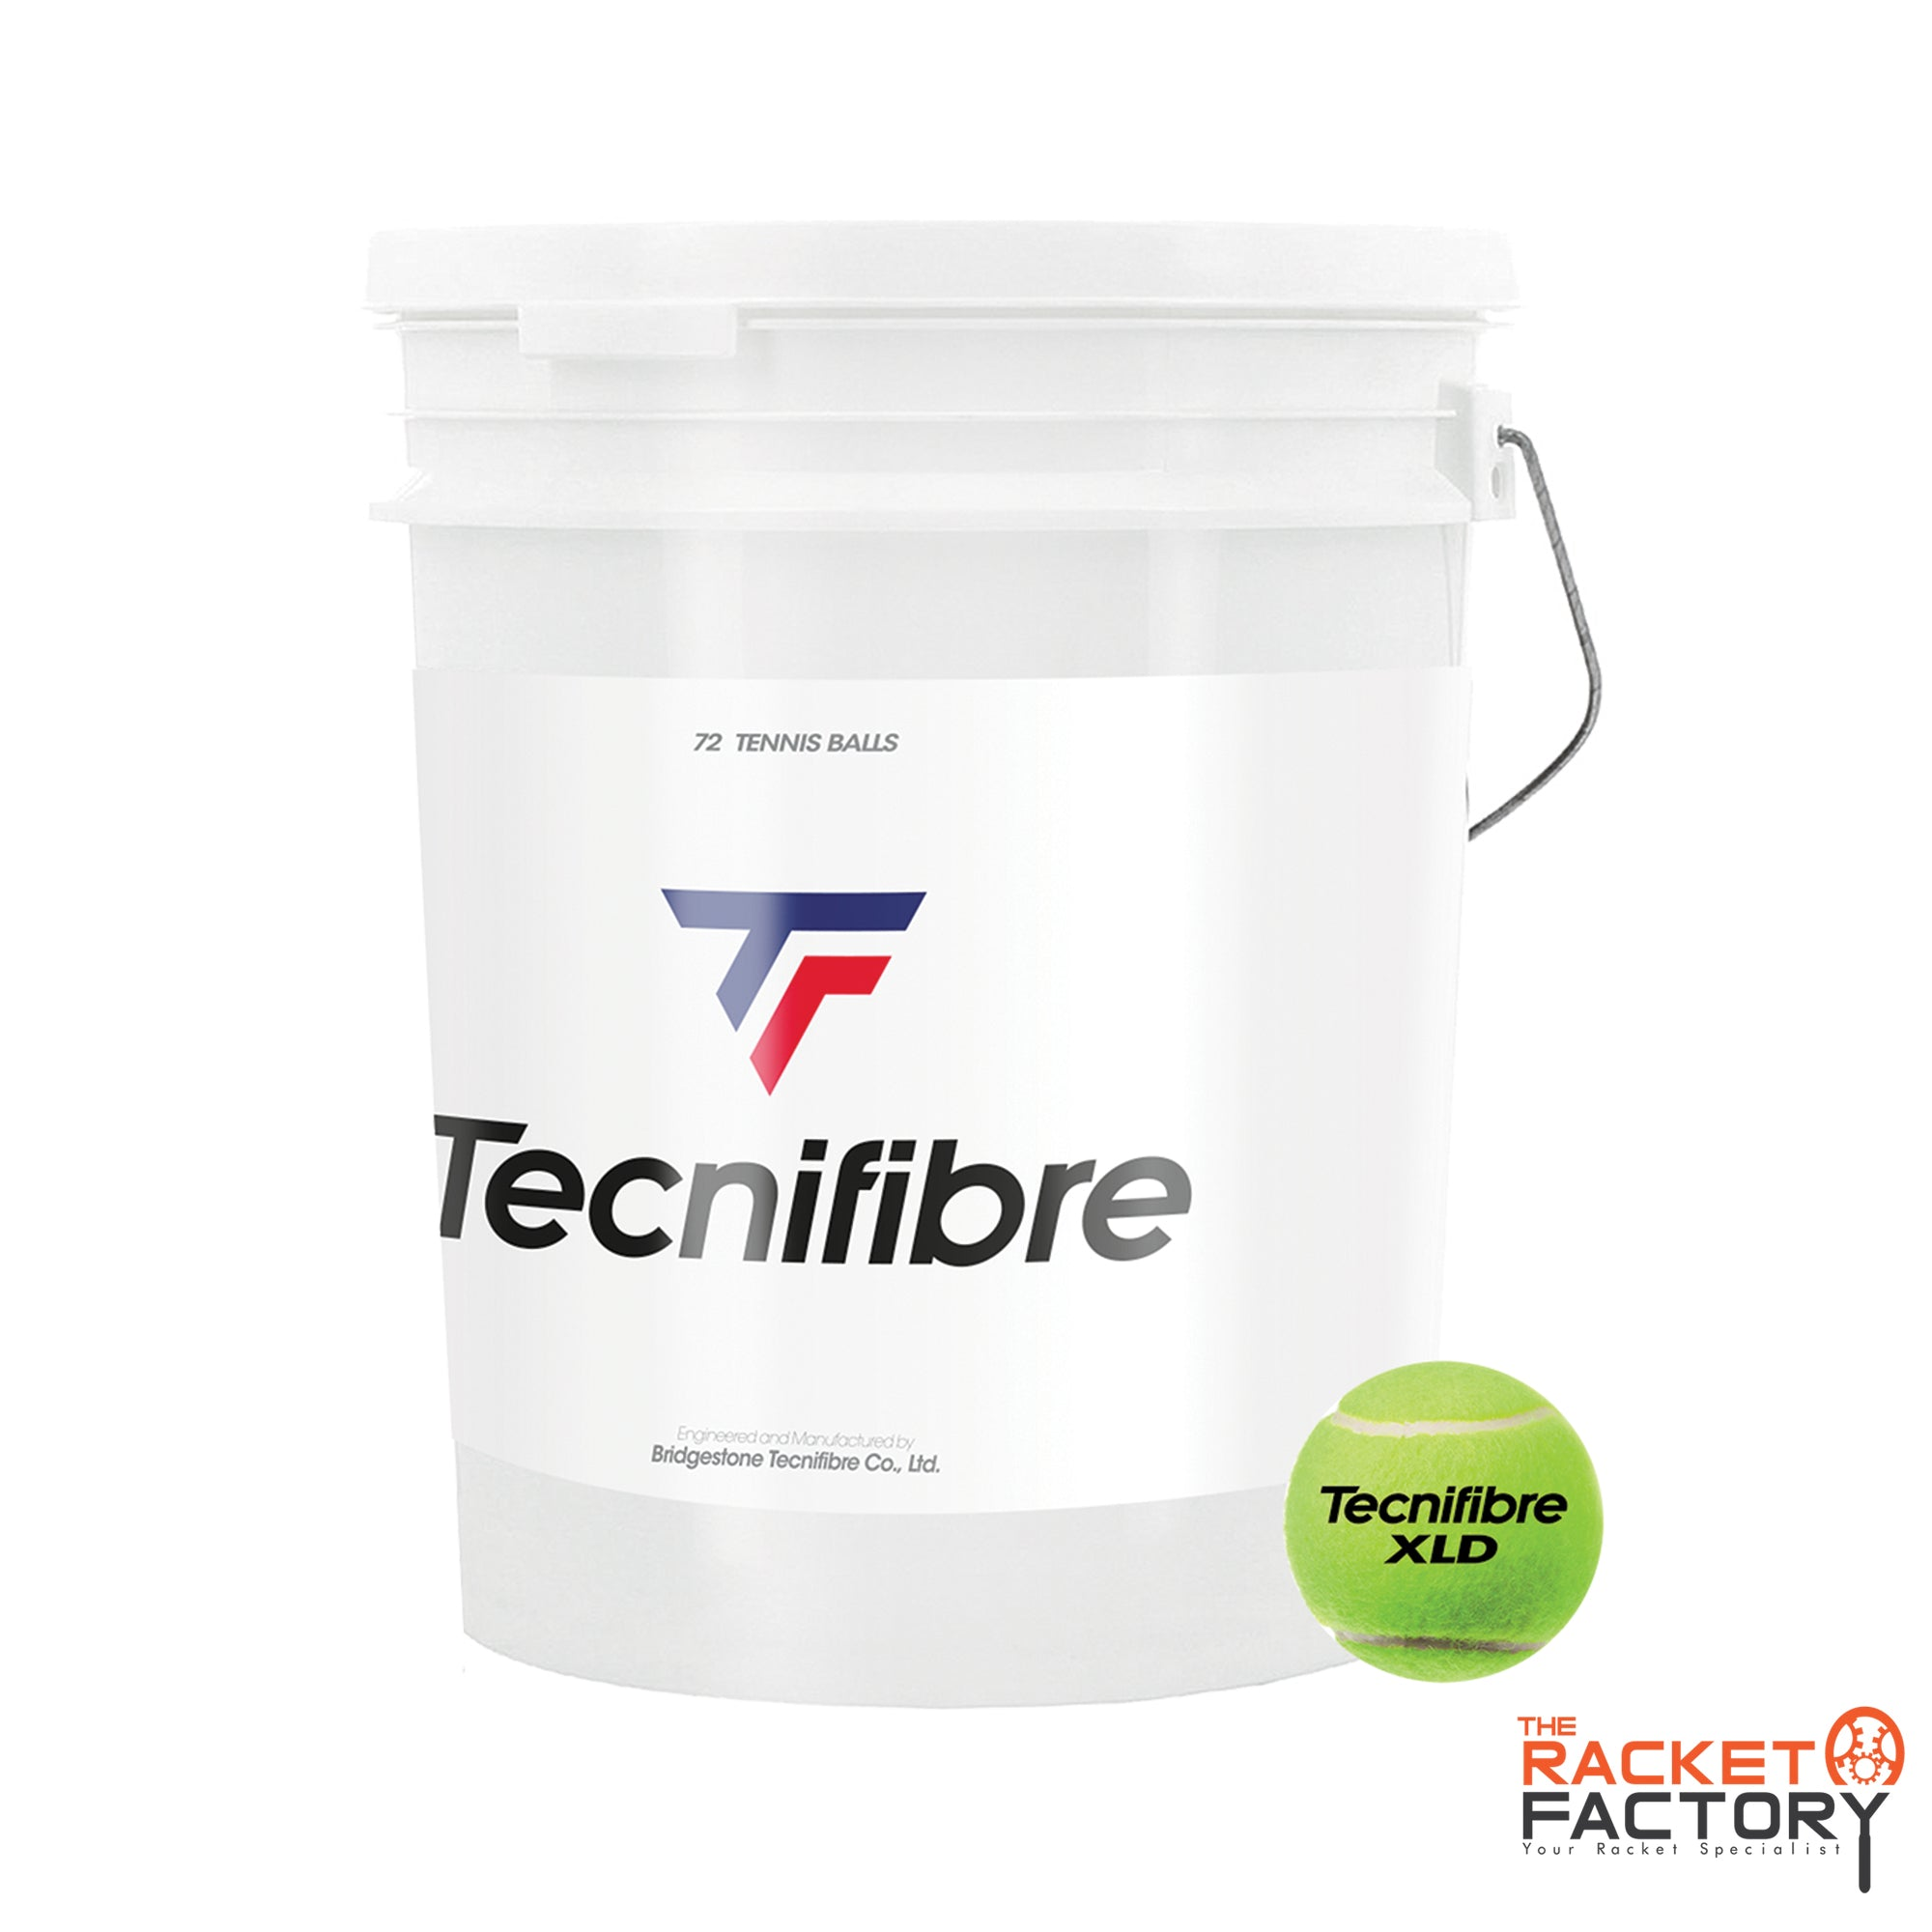 Tecnifibre XLD Ball Bucket of 72